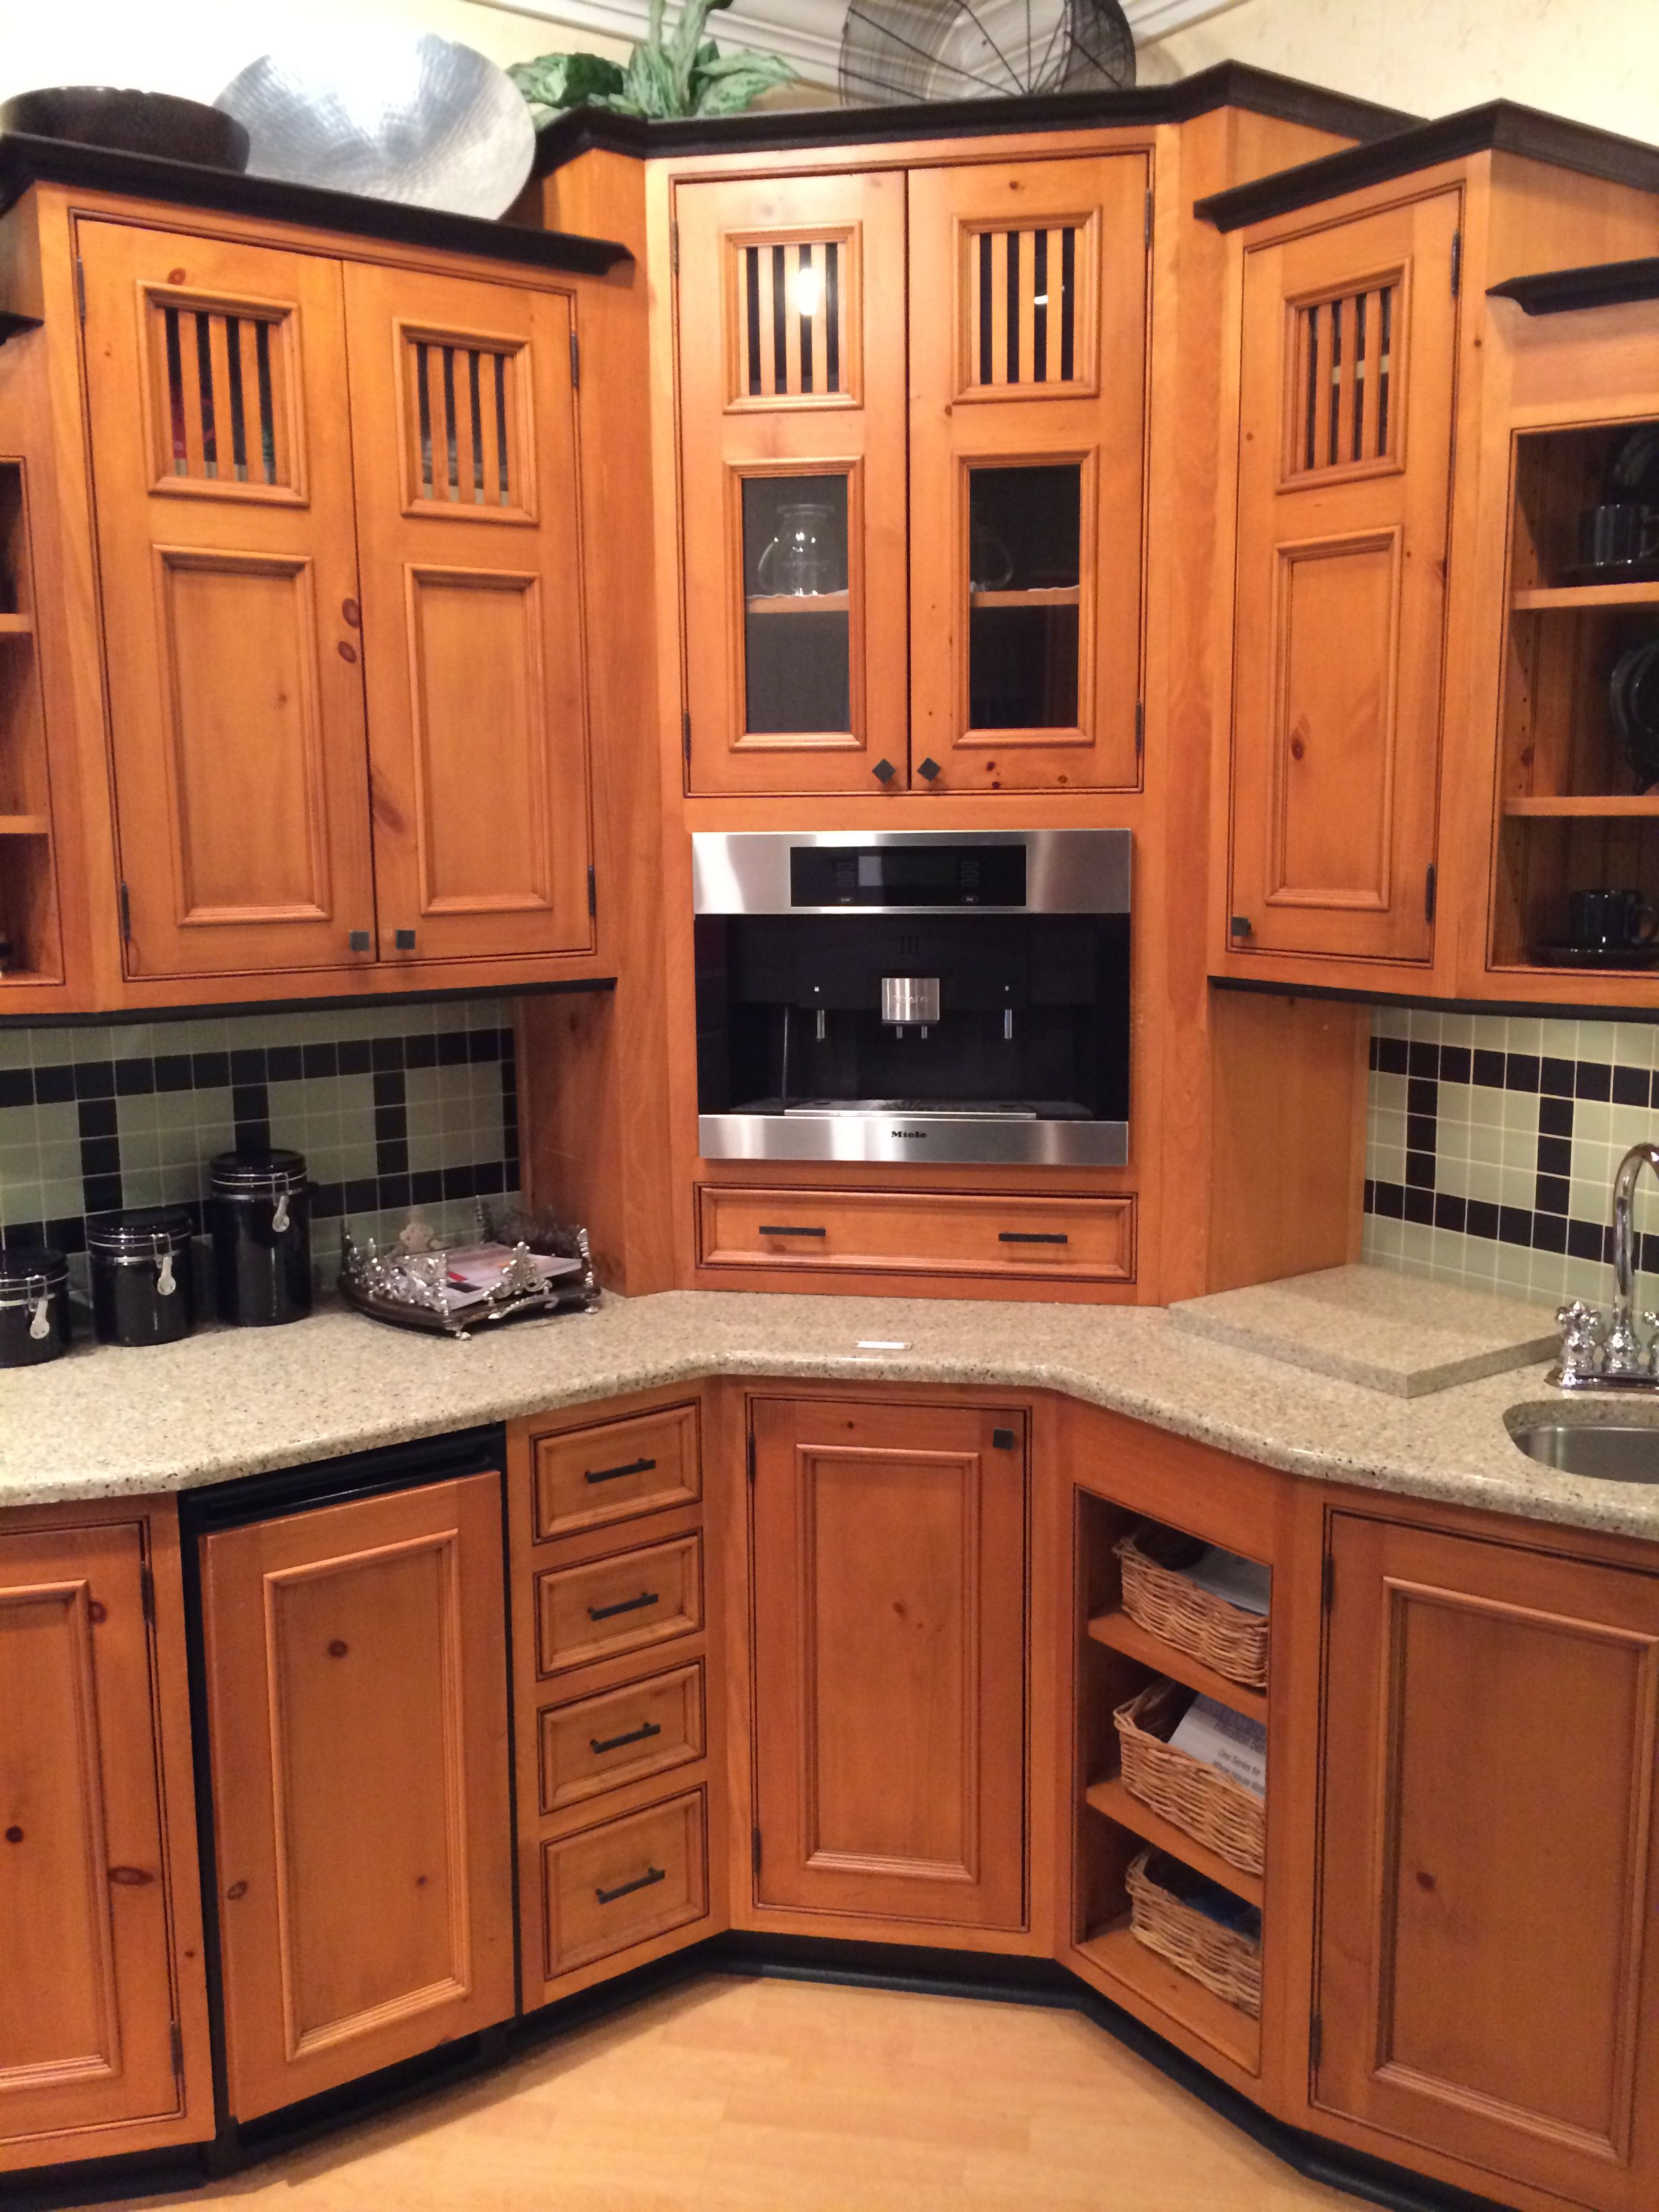 Kitchen cabinets house pinterest kitchens and house